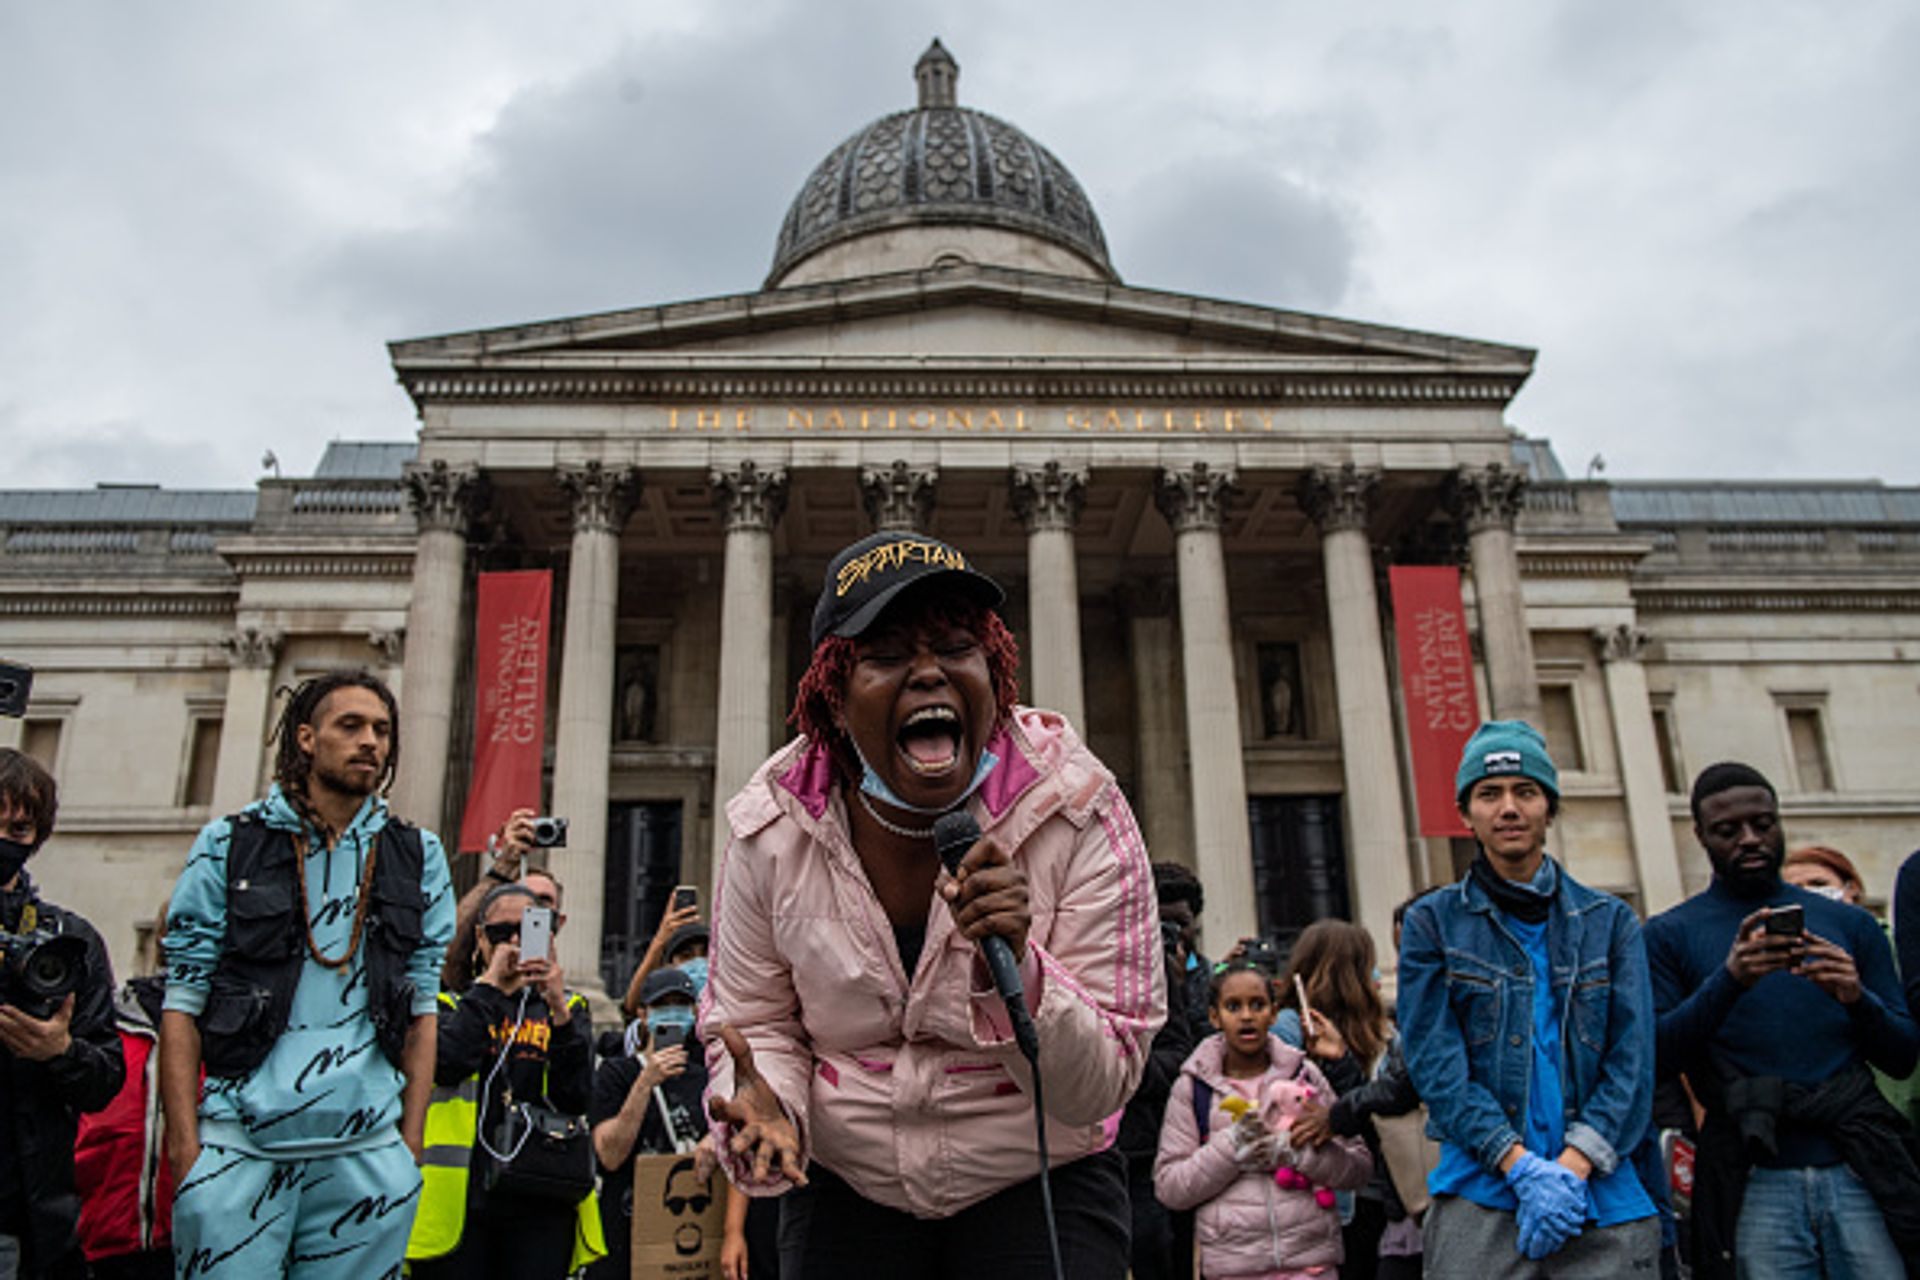 A Black Lives Matter supporter sings to crowds who marched with her in front of the National Gallery in Trafalgar Square on 12 June in London. Photo by Chris J Ratcliffe/Getty Images